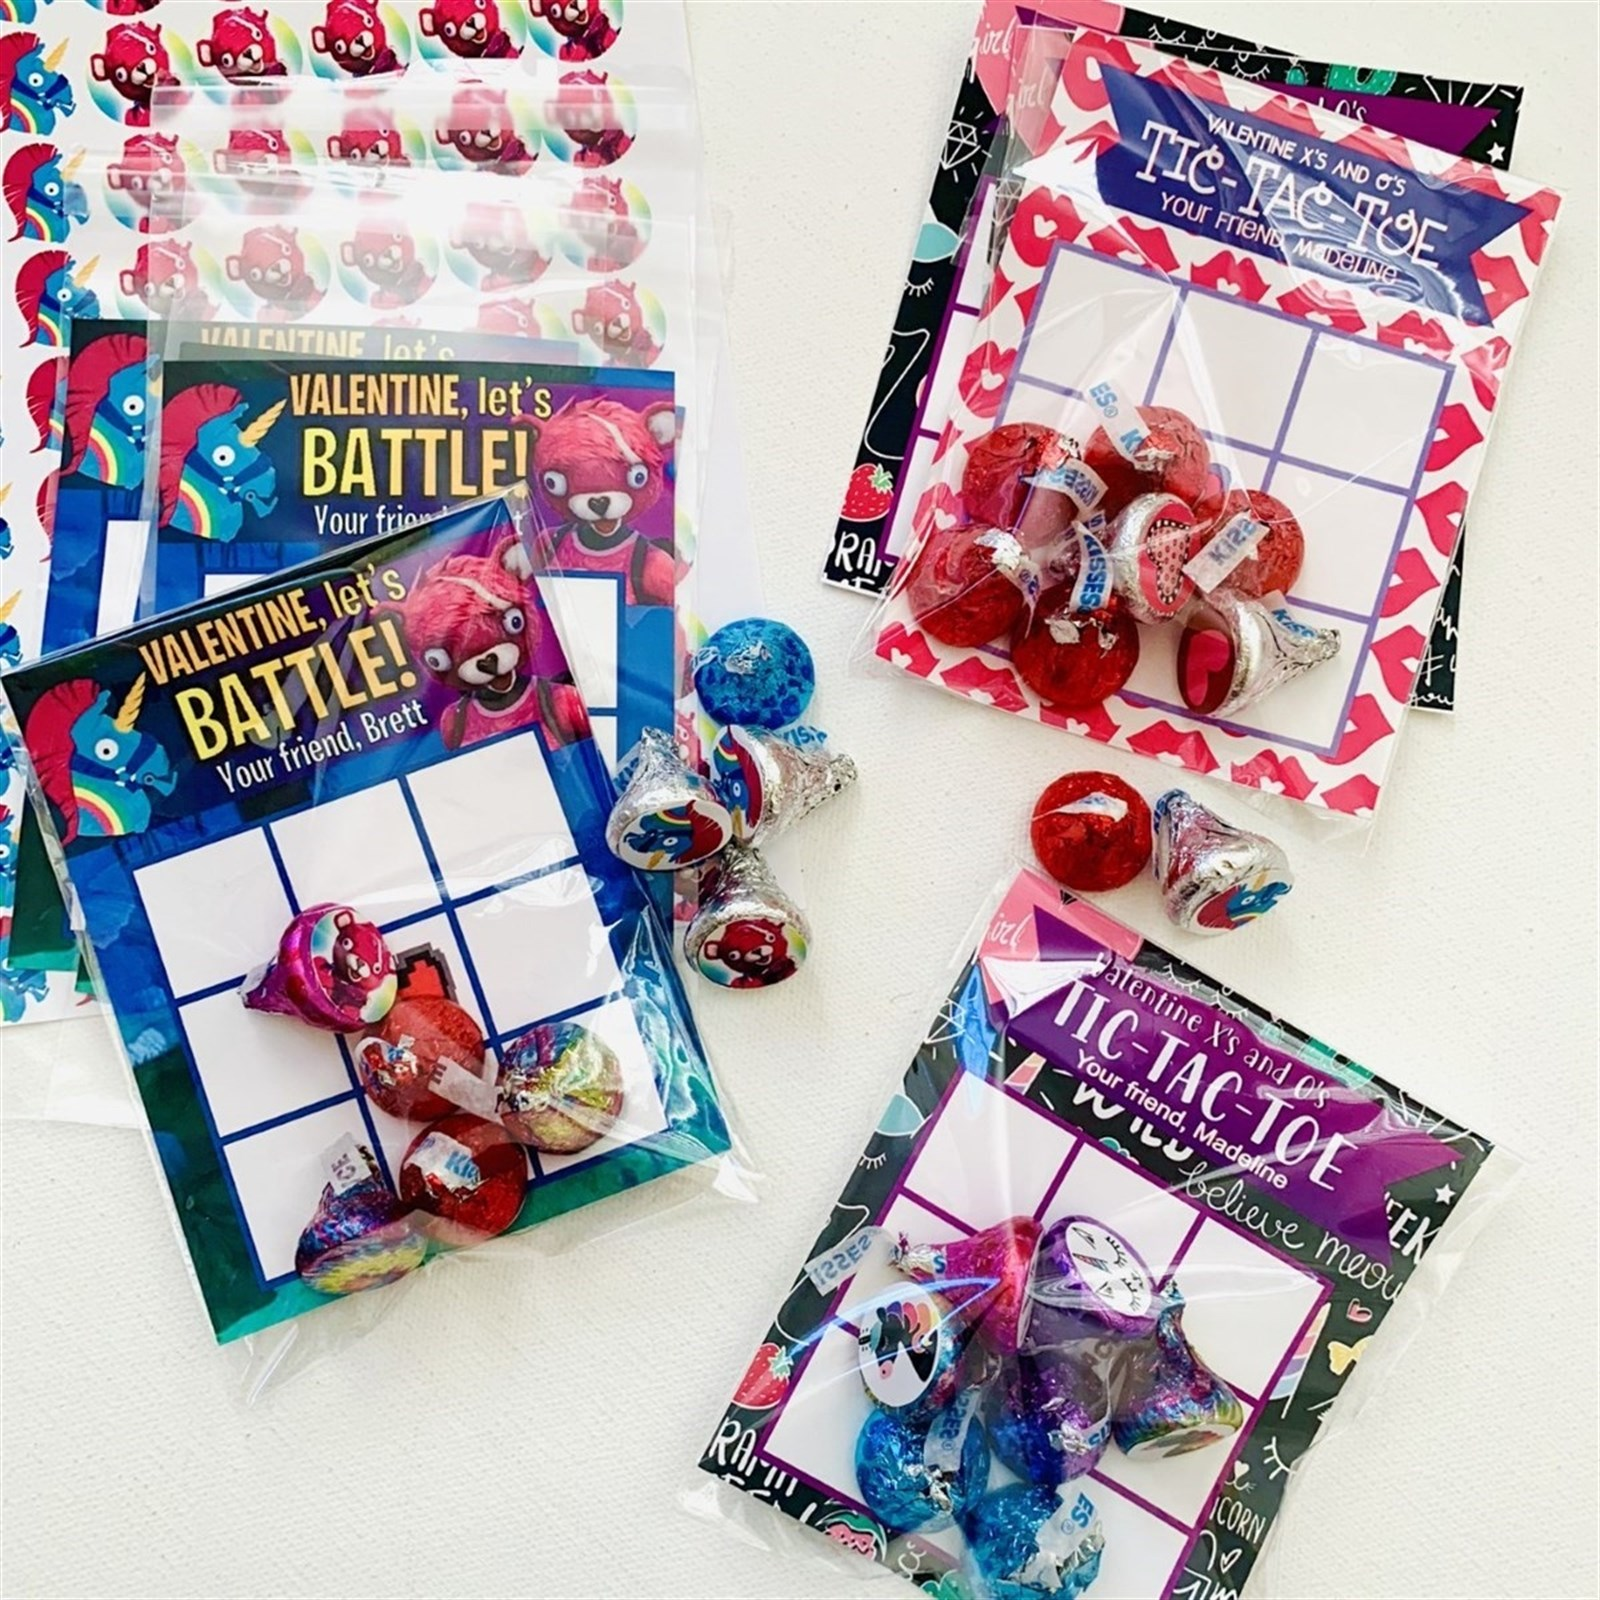 Personalized Tic Tac Toe Sets Only $4.95